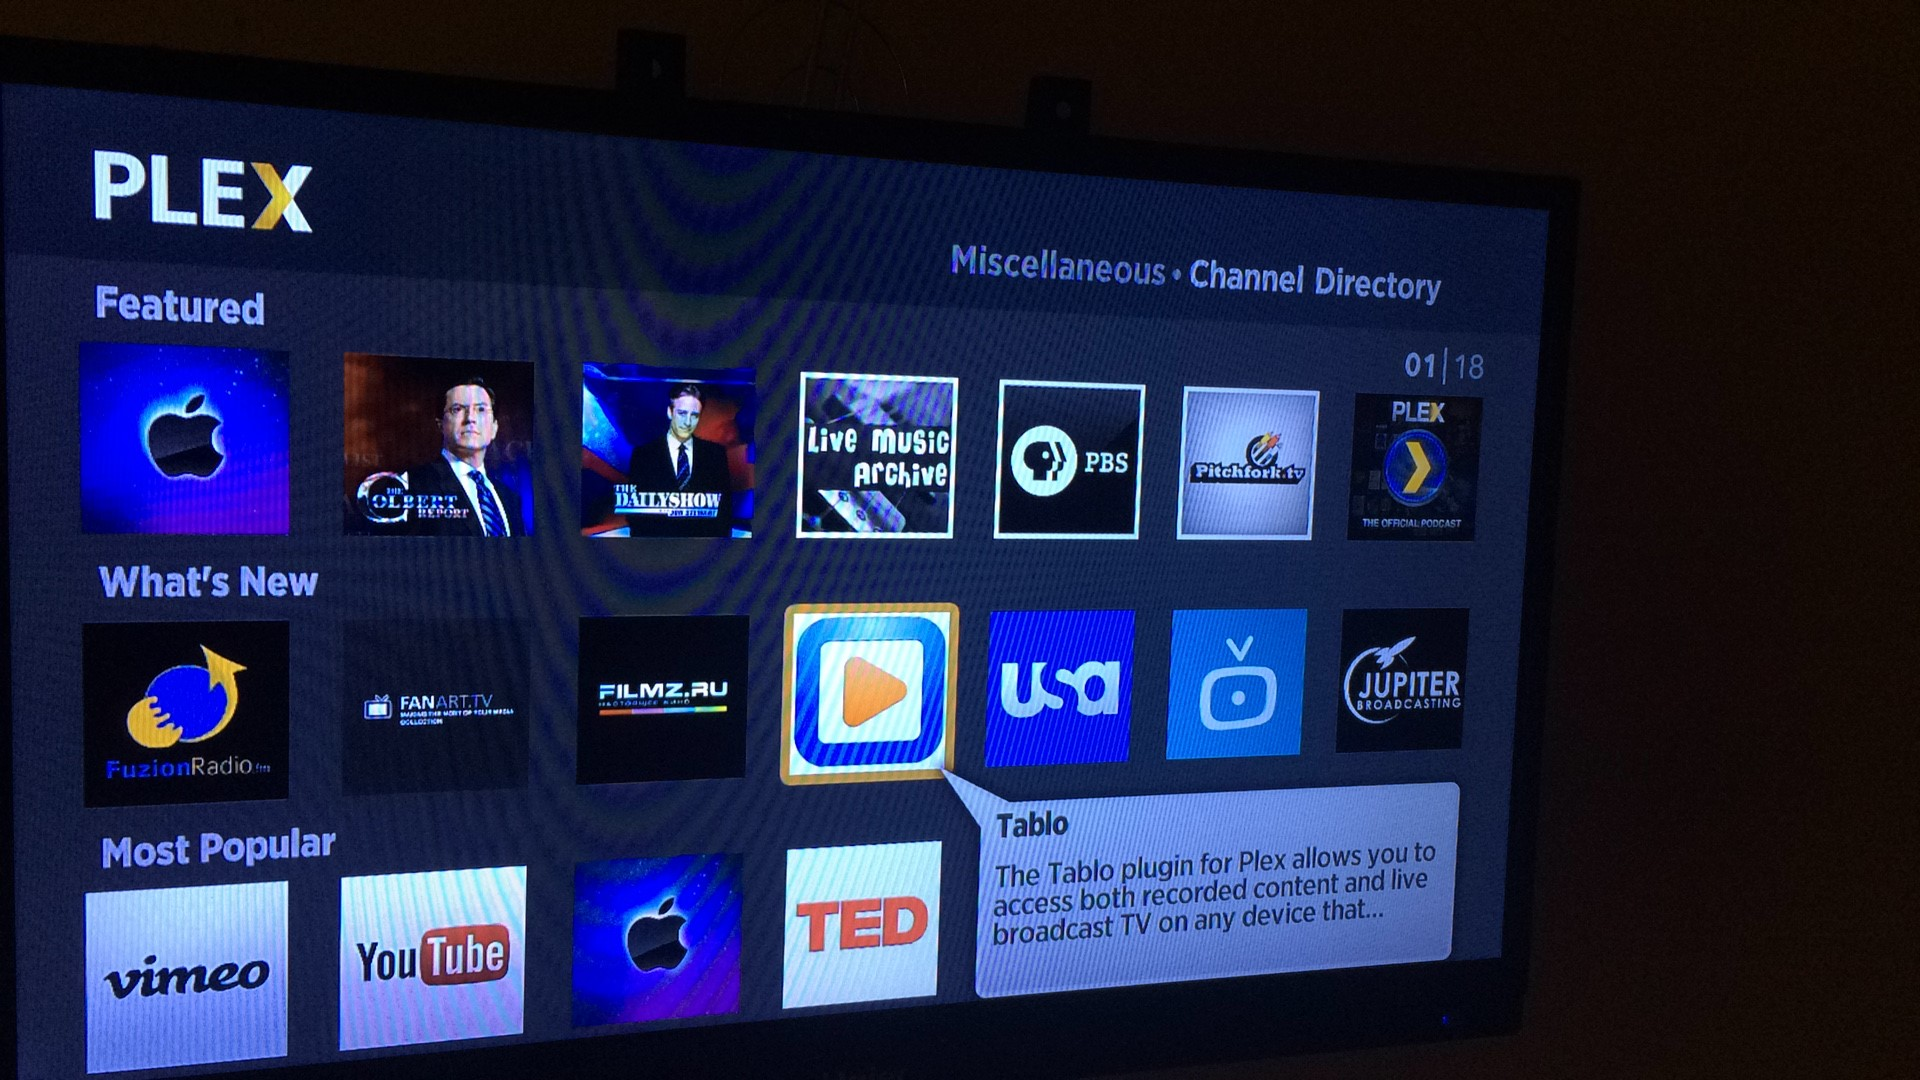 Plex Live TV is Up and Running: Get Rid of That Cable Guy! - 1redDrop